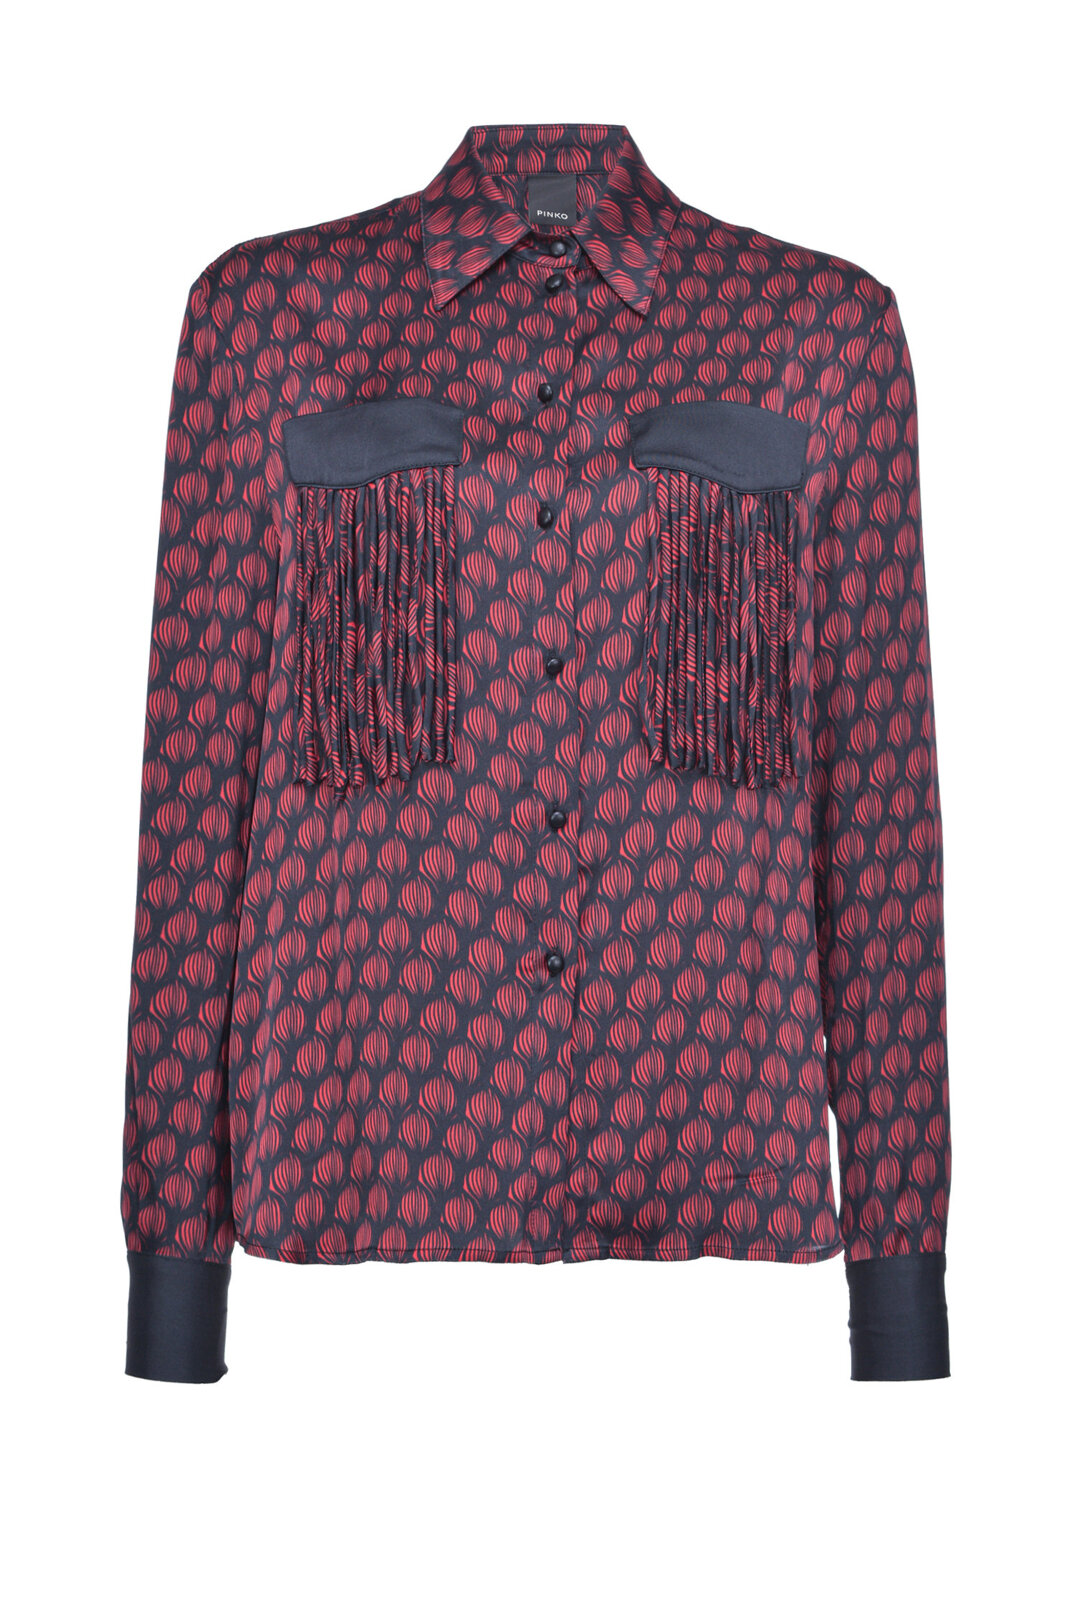 Shirt With Fringes In Front - Pinko